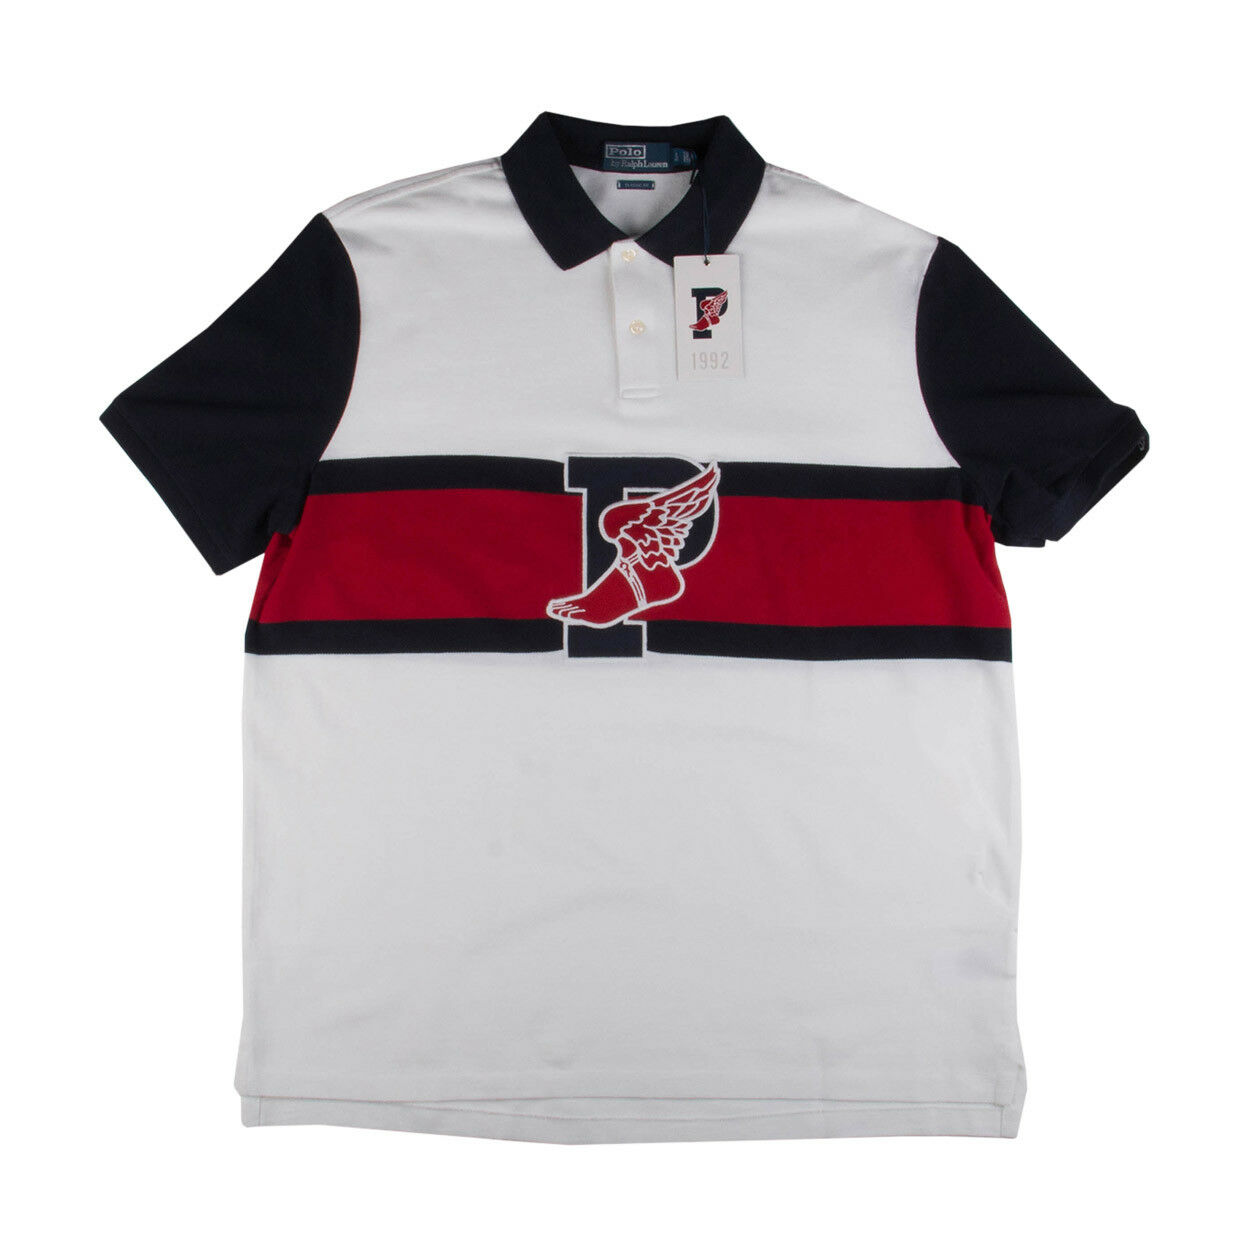 Polo Mens 1992 Stadium Collection P-Wing Classic Polo Red White-bluee